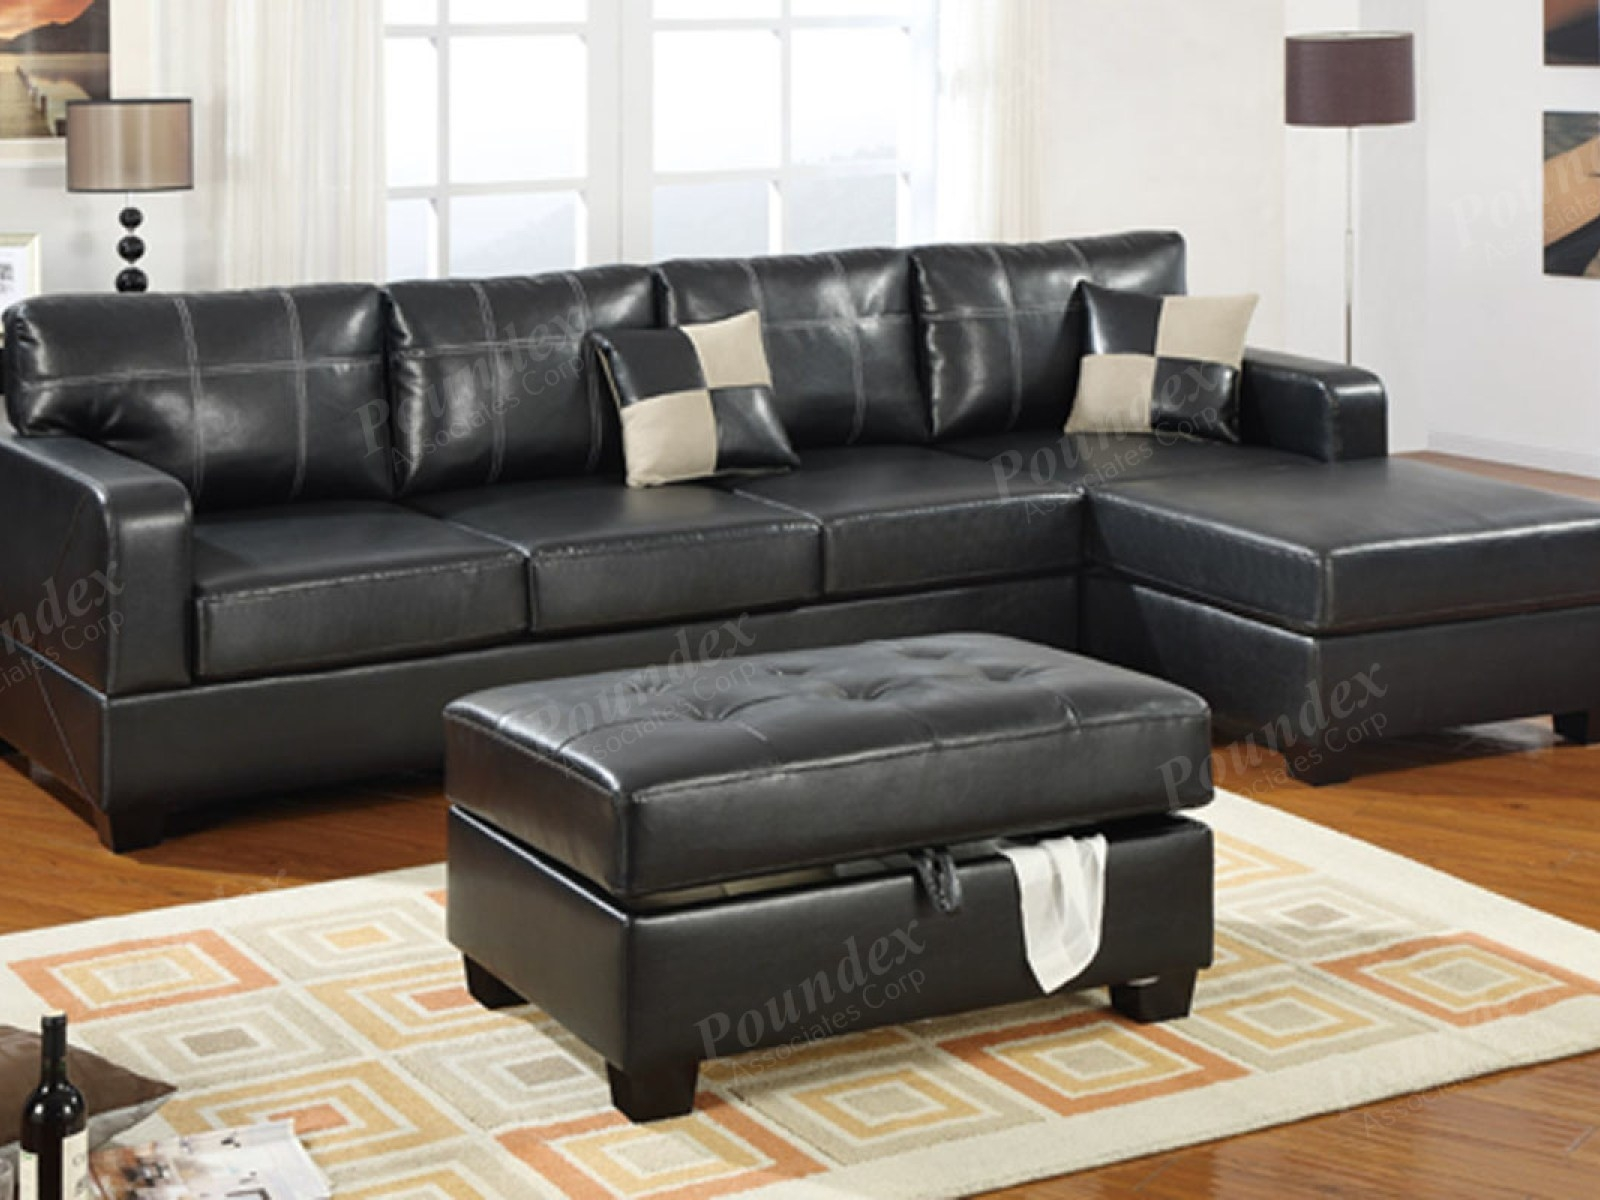 Sofa 19 Cute Sofa Craftsman Style Modern Single Leather Regarding Craftsman Sectional Sofa (Image 15 of 15)